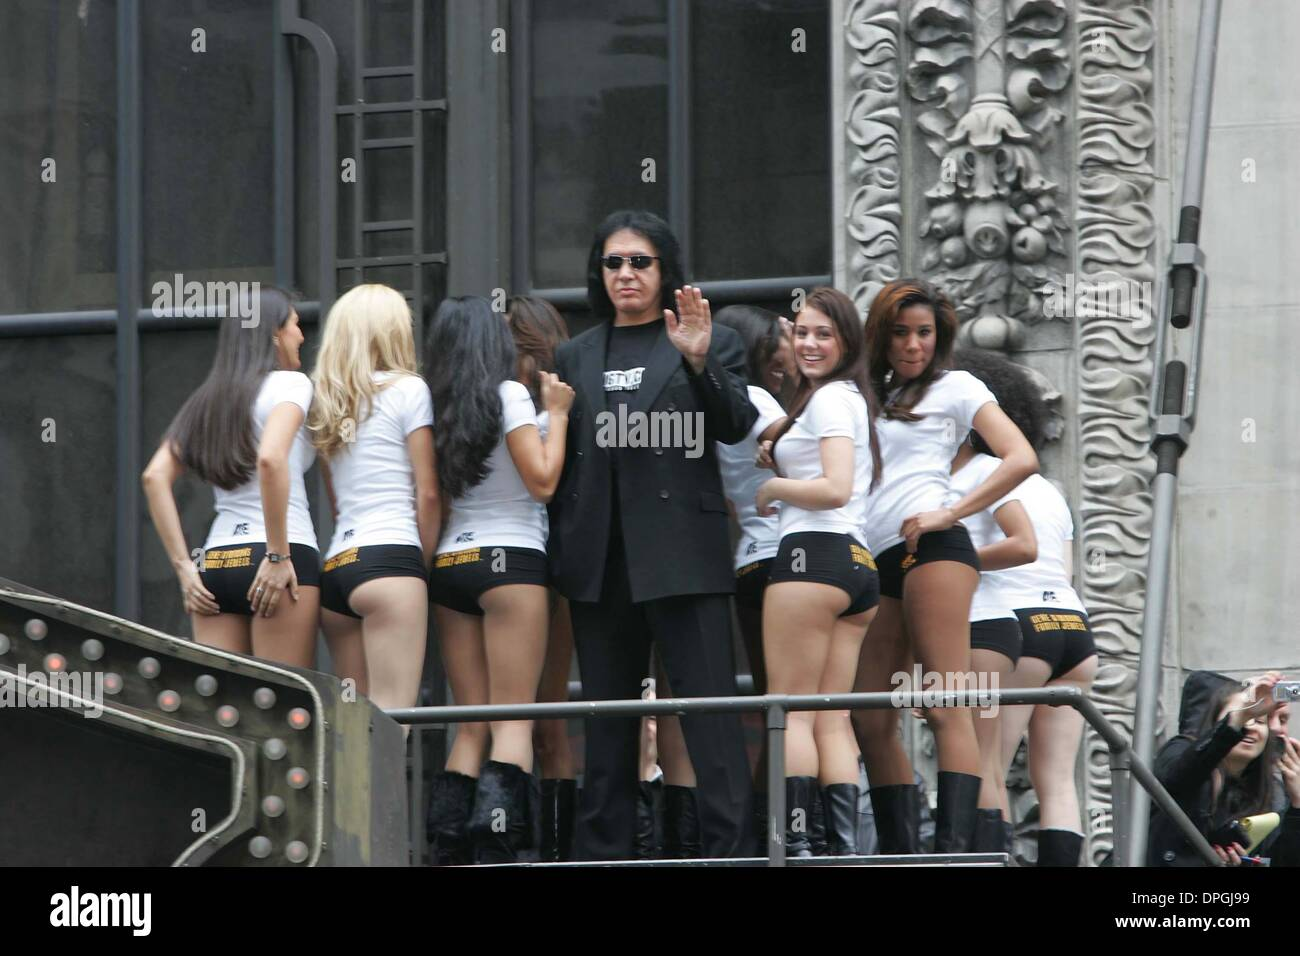 21, 2006 - New York, New York, U.S. - GENE SIMMONS AND 25 MODELS LAUNCH AN  ''ASS''VERTISING CAMPAIGN TO PROMOTE SEASON 2 OF''GENE SIMMON'S FAMILY  JEWELS'' ...